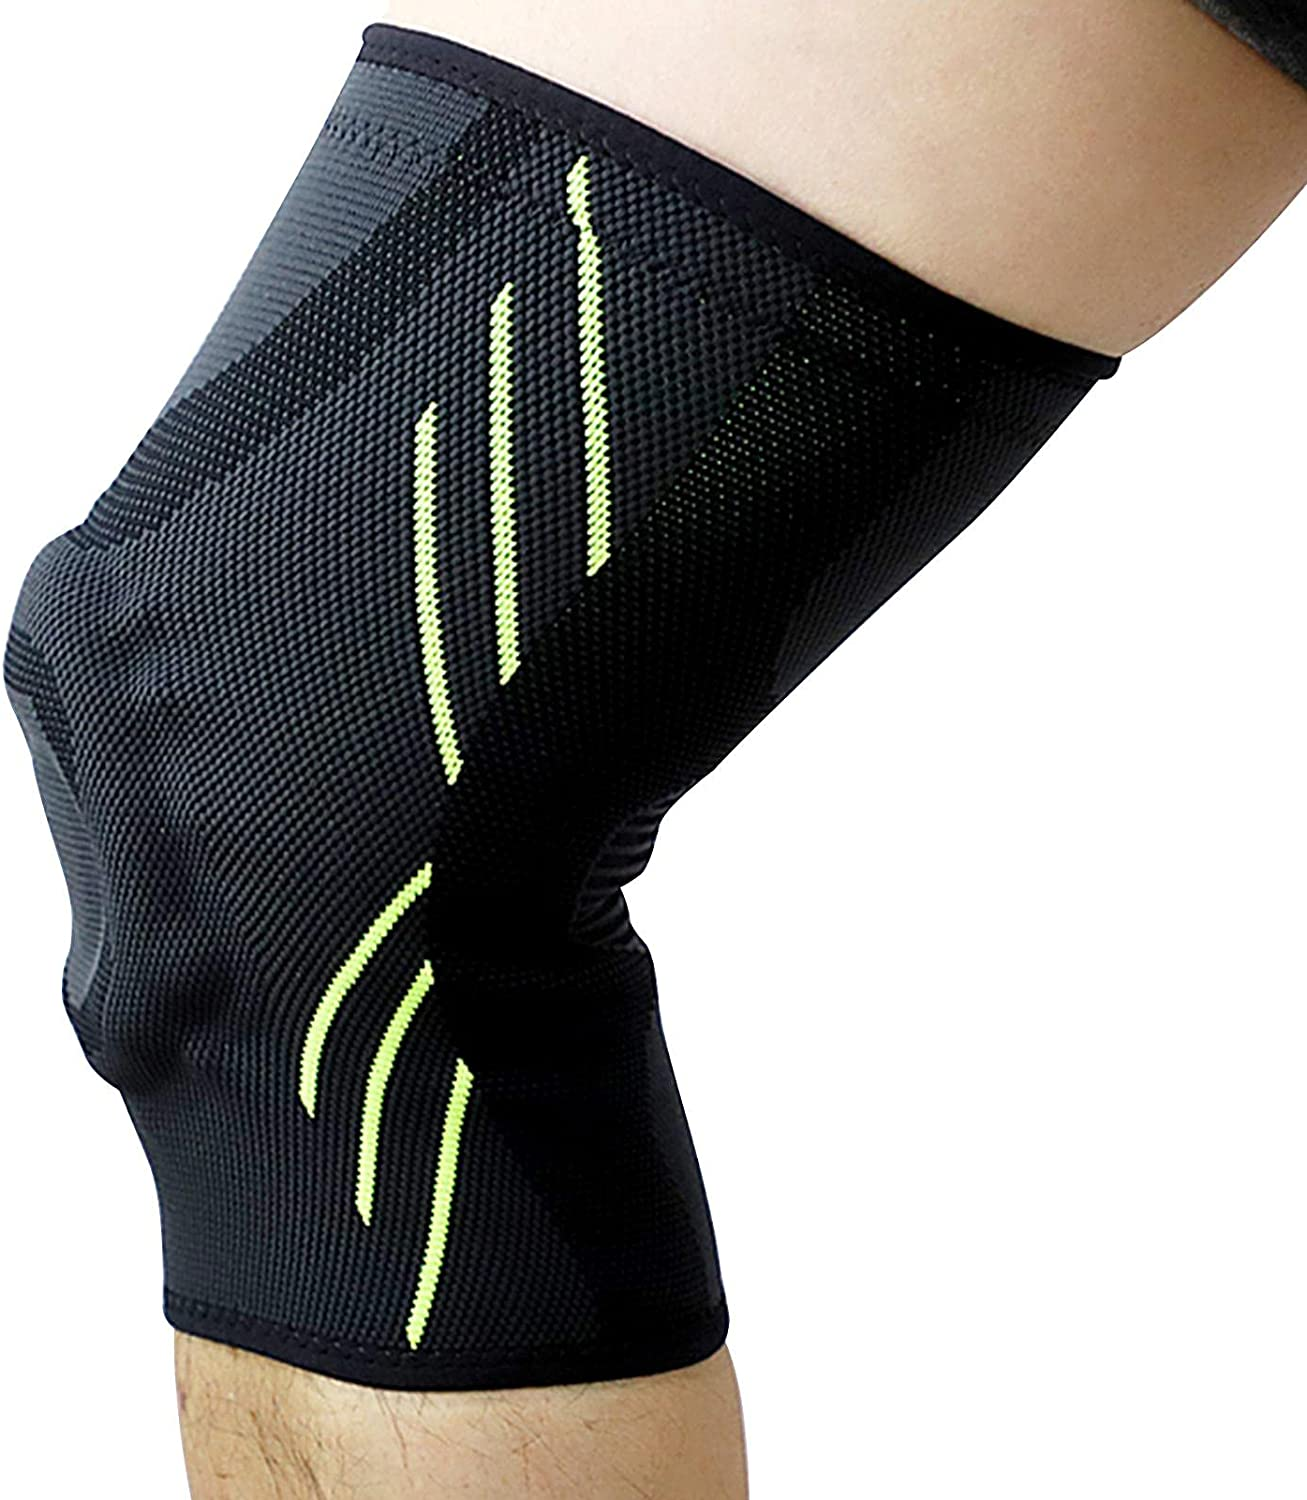 Knee Brace Sleeves OFFicial shop Silicone Support Women for Very popular! Gel with Pad